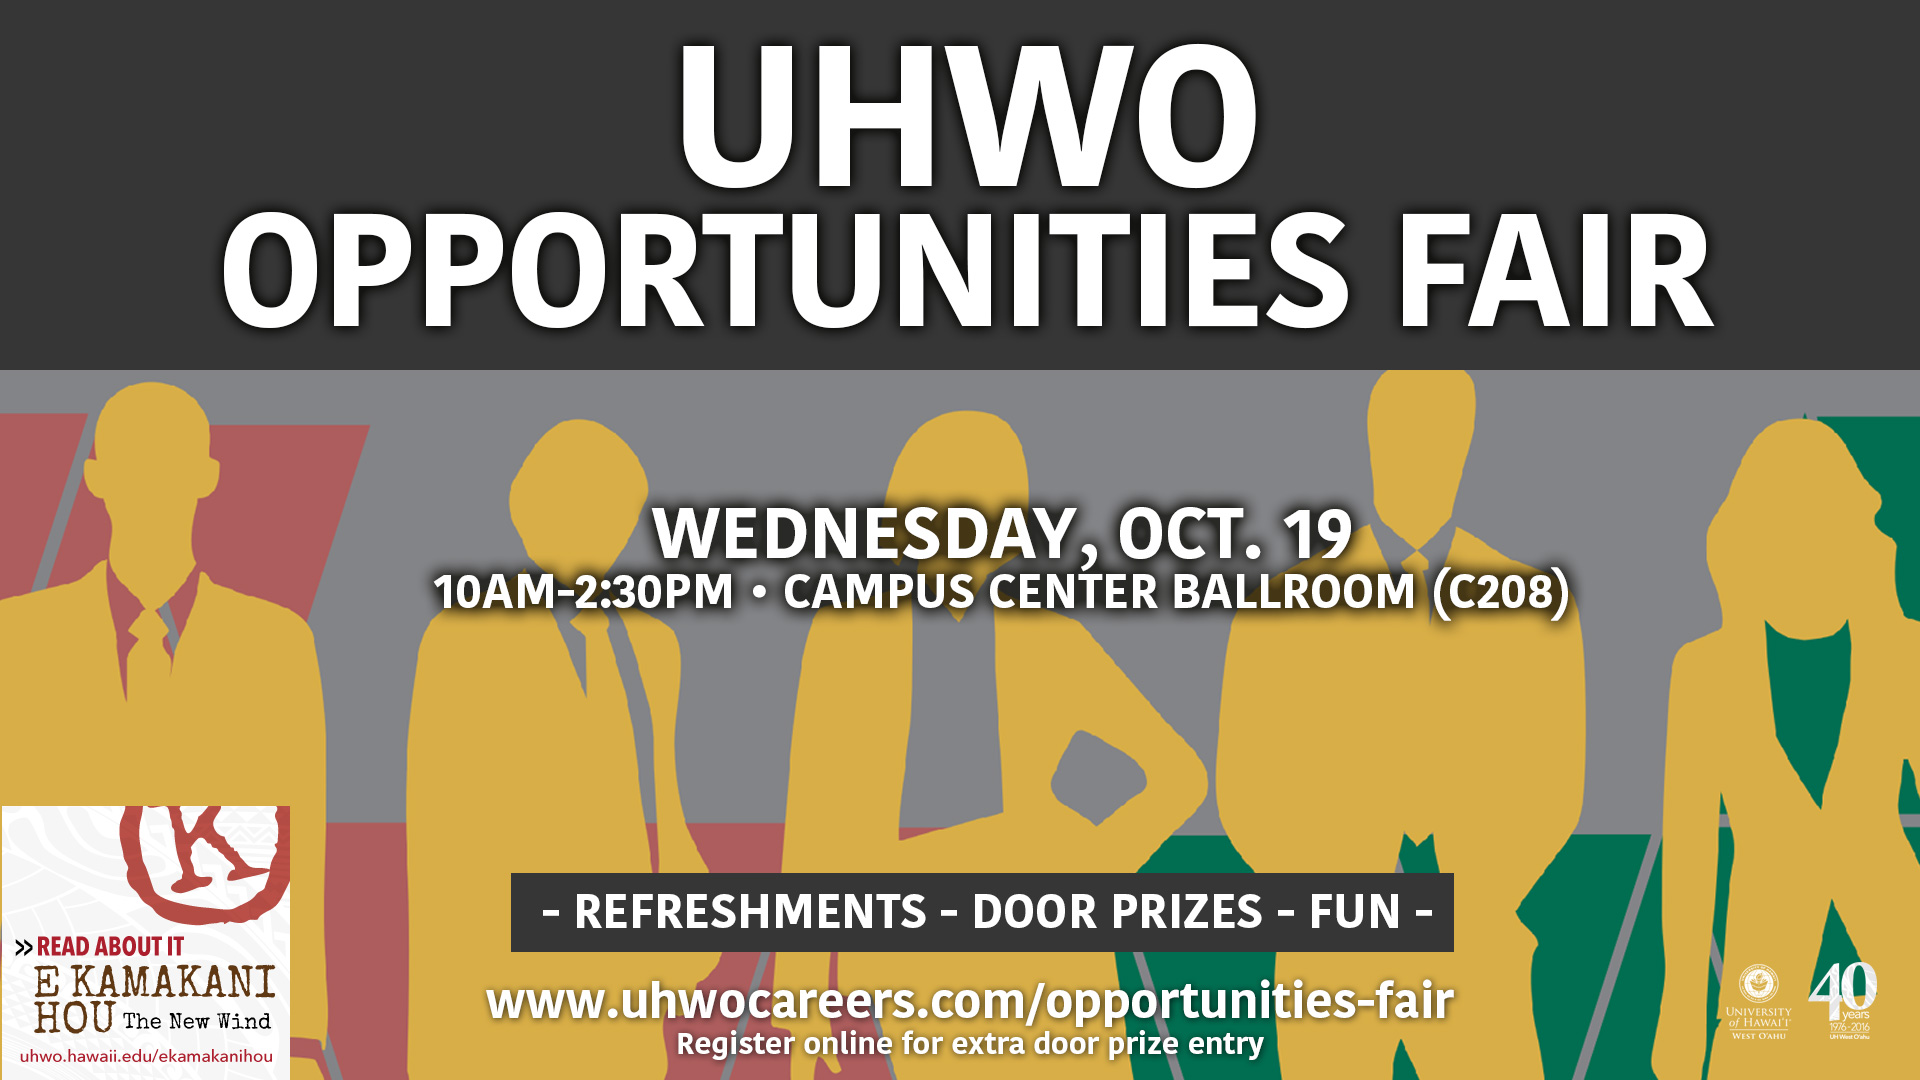 UHWO Opportunities Fair